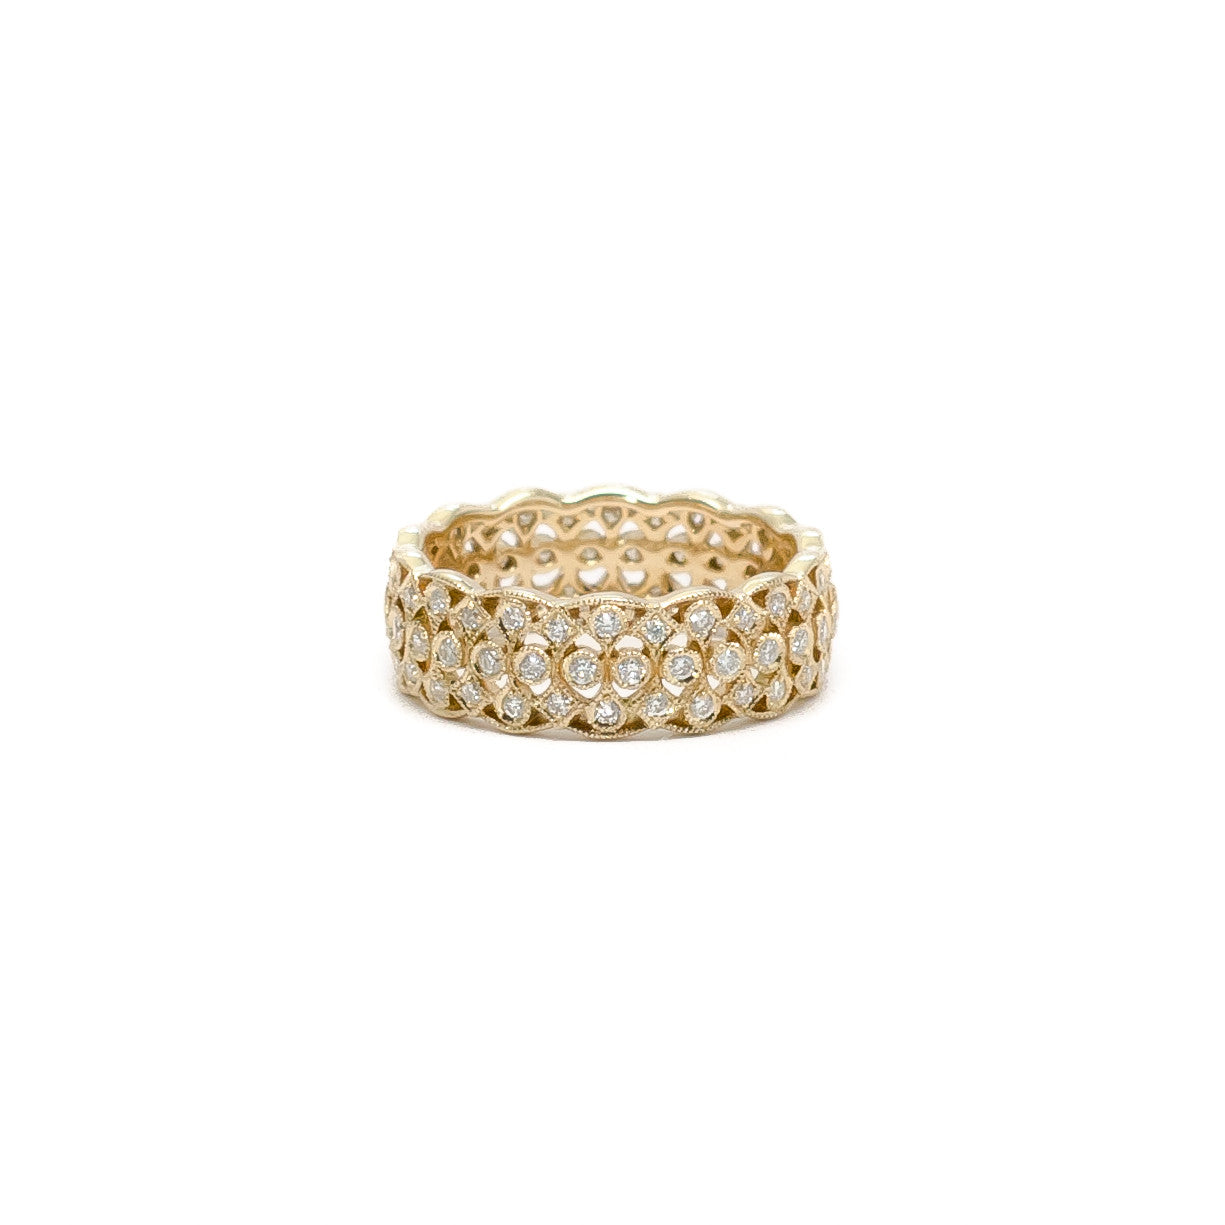 Diamond Pave Band with Scalloped Edge